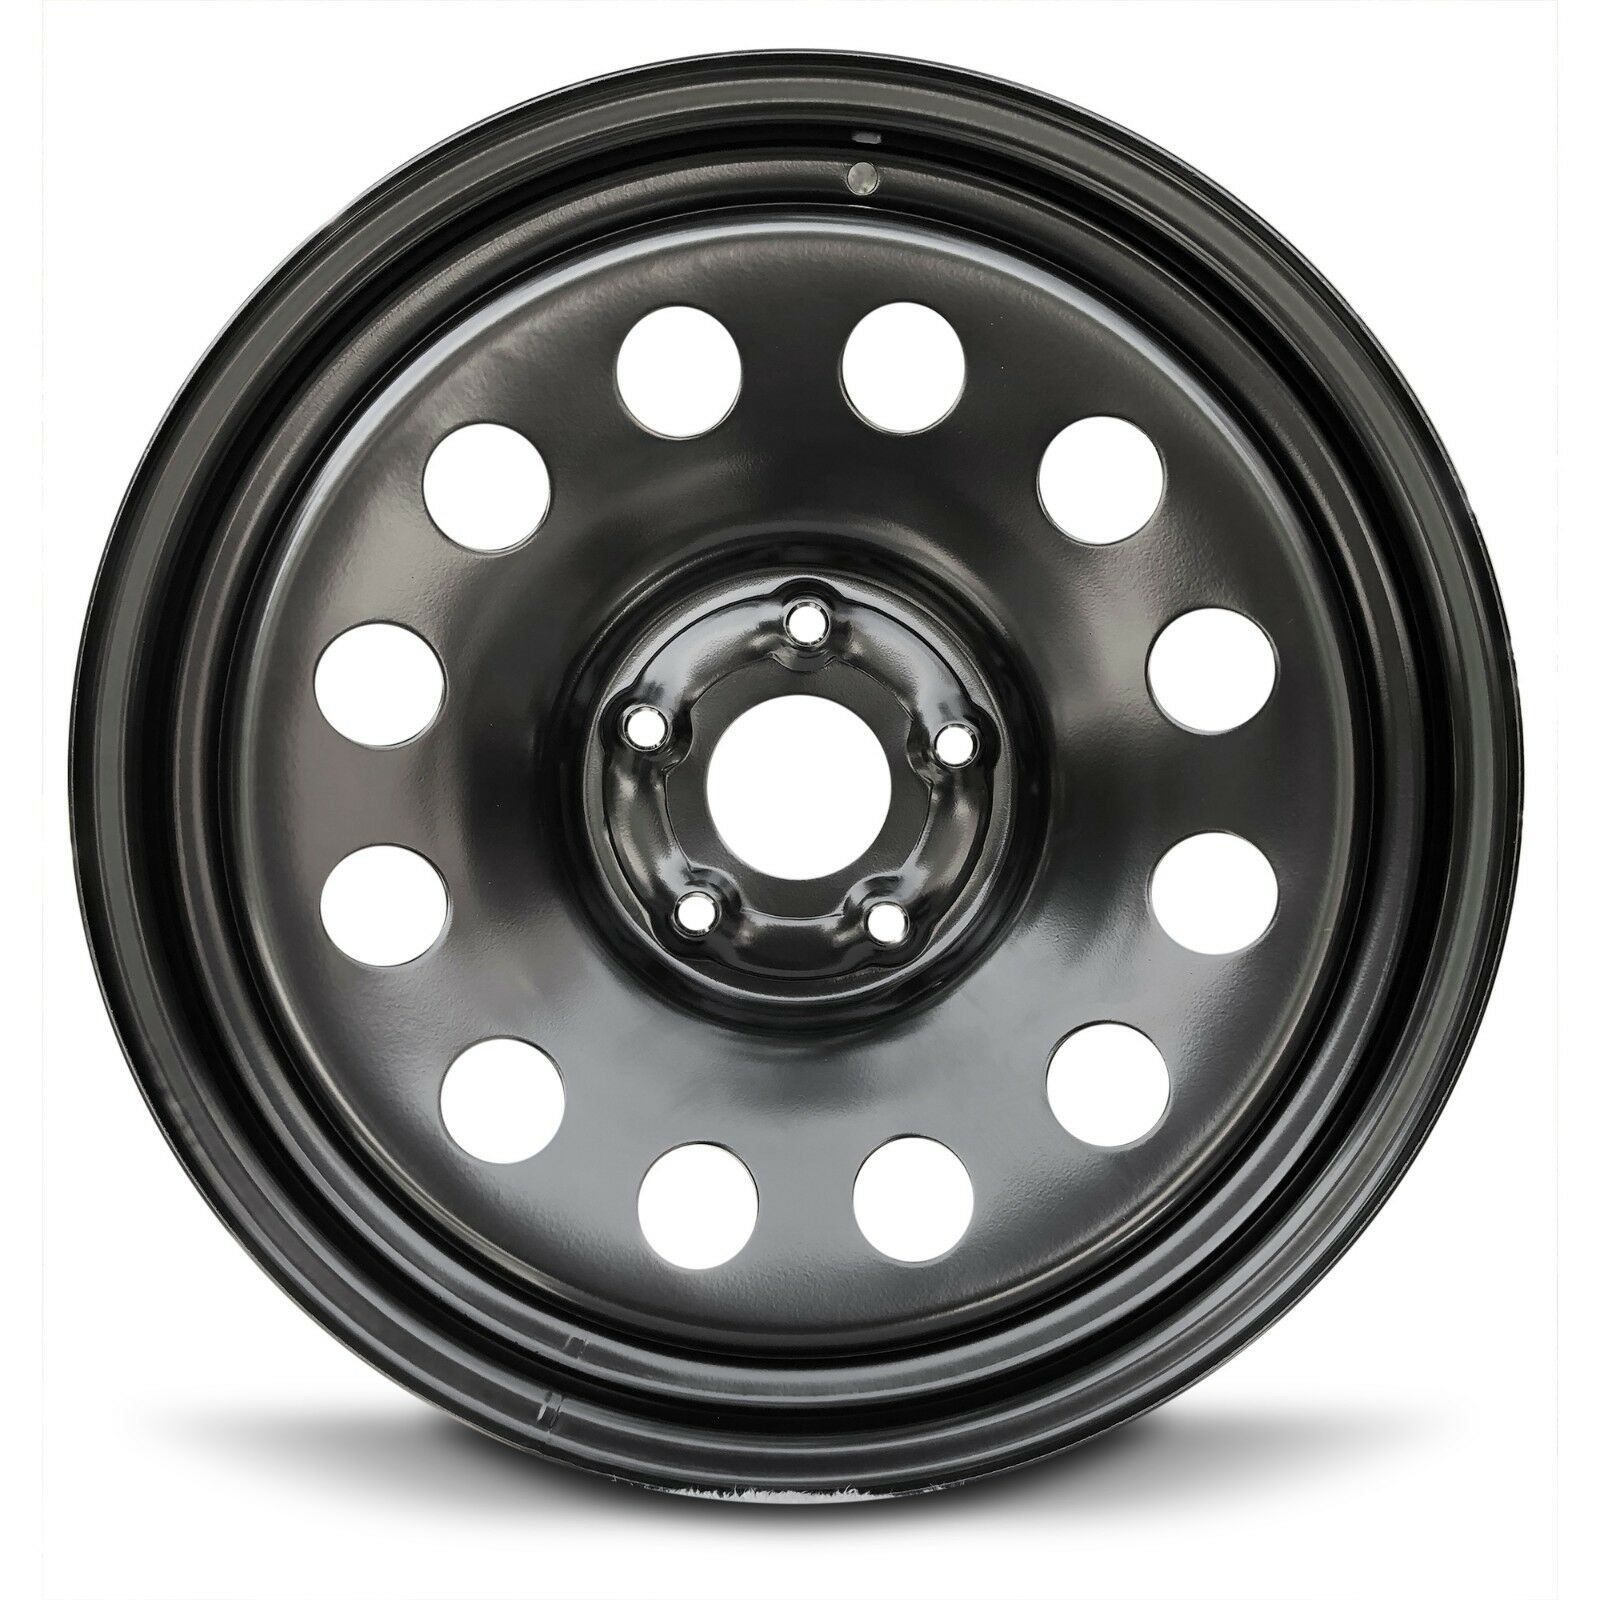 Wheel 20'' Steel Rim 2011-2019 Dodge Ram 1500 New 12 Holes